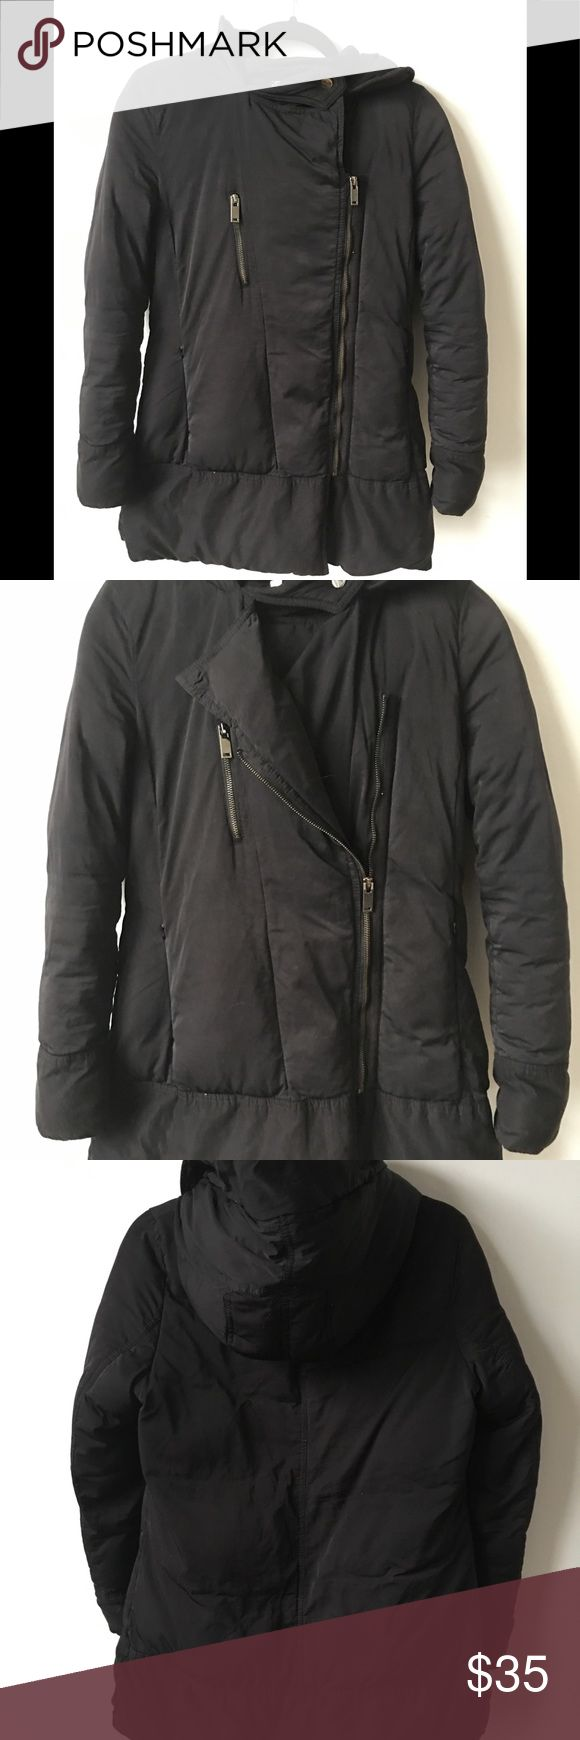 Awesome Zara winter coat It is poly filled and thick/ very warm!! Feels like your wearing a down comforter for a coat! Very very comfortable! Zara Jackets & Coats